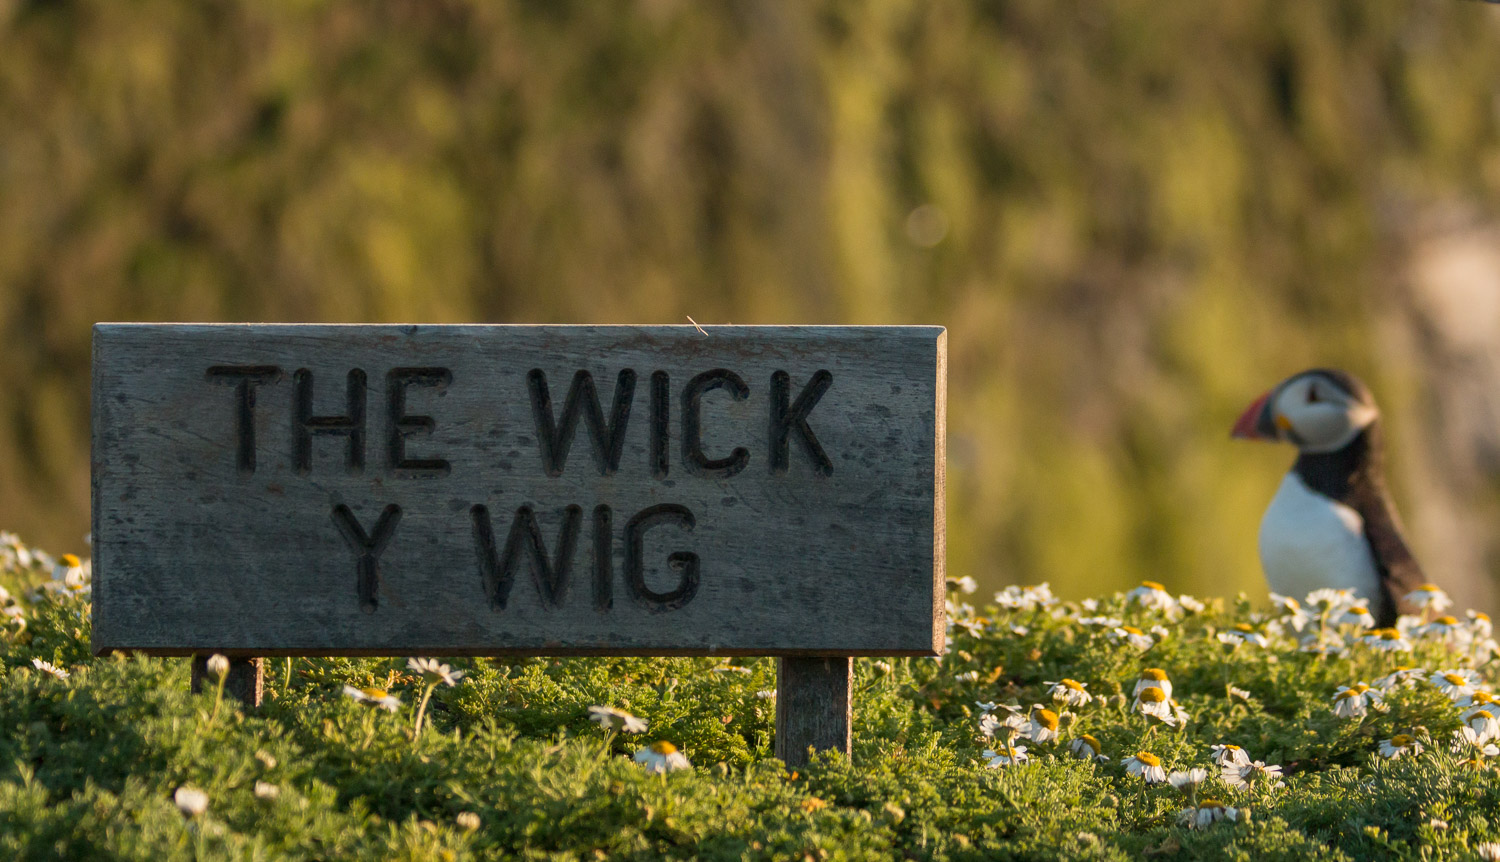 The Wick where the puffins live on Skomer Island